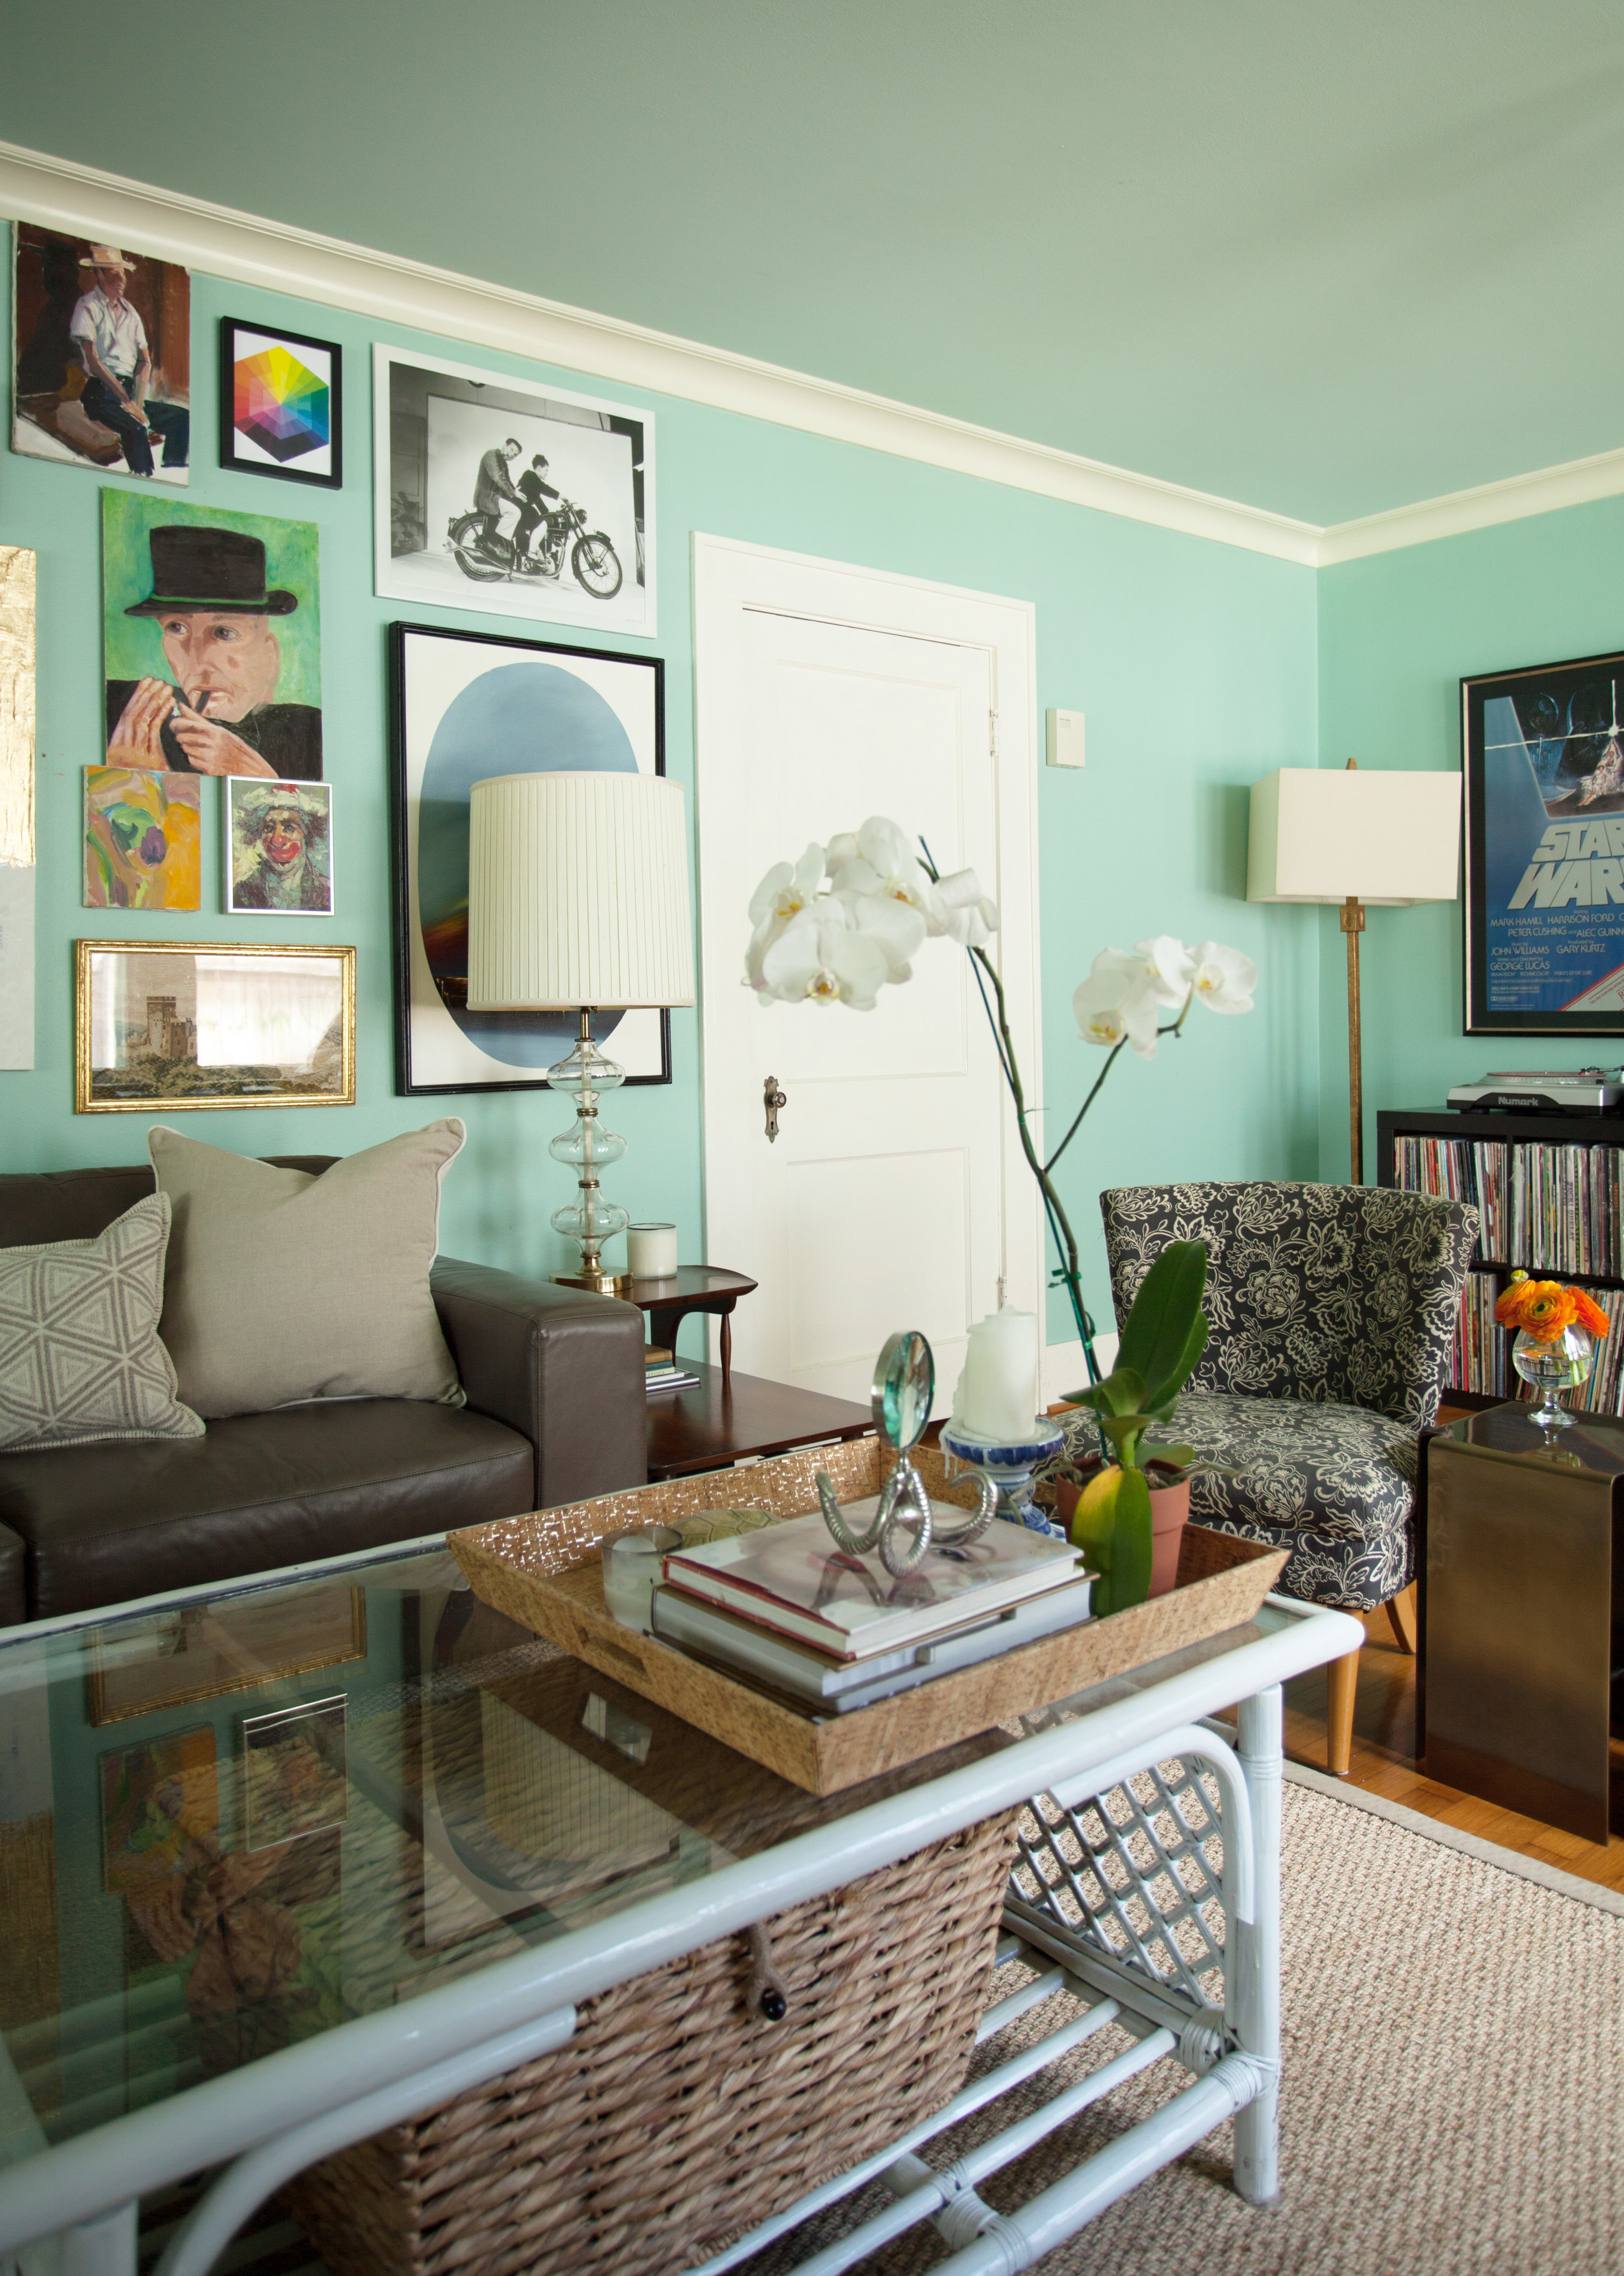 Eclectic living room in 1920s bungalow in Houston Heights by Jamie House Design.